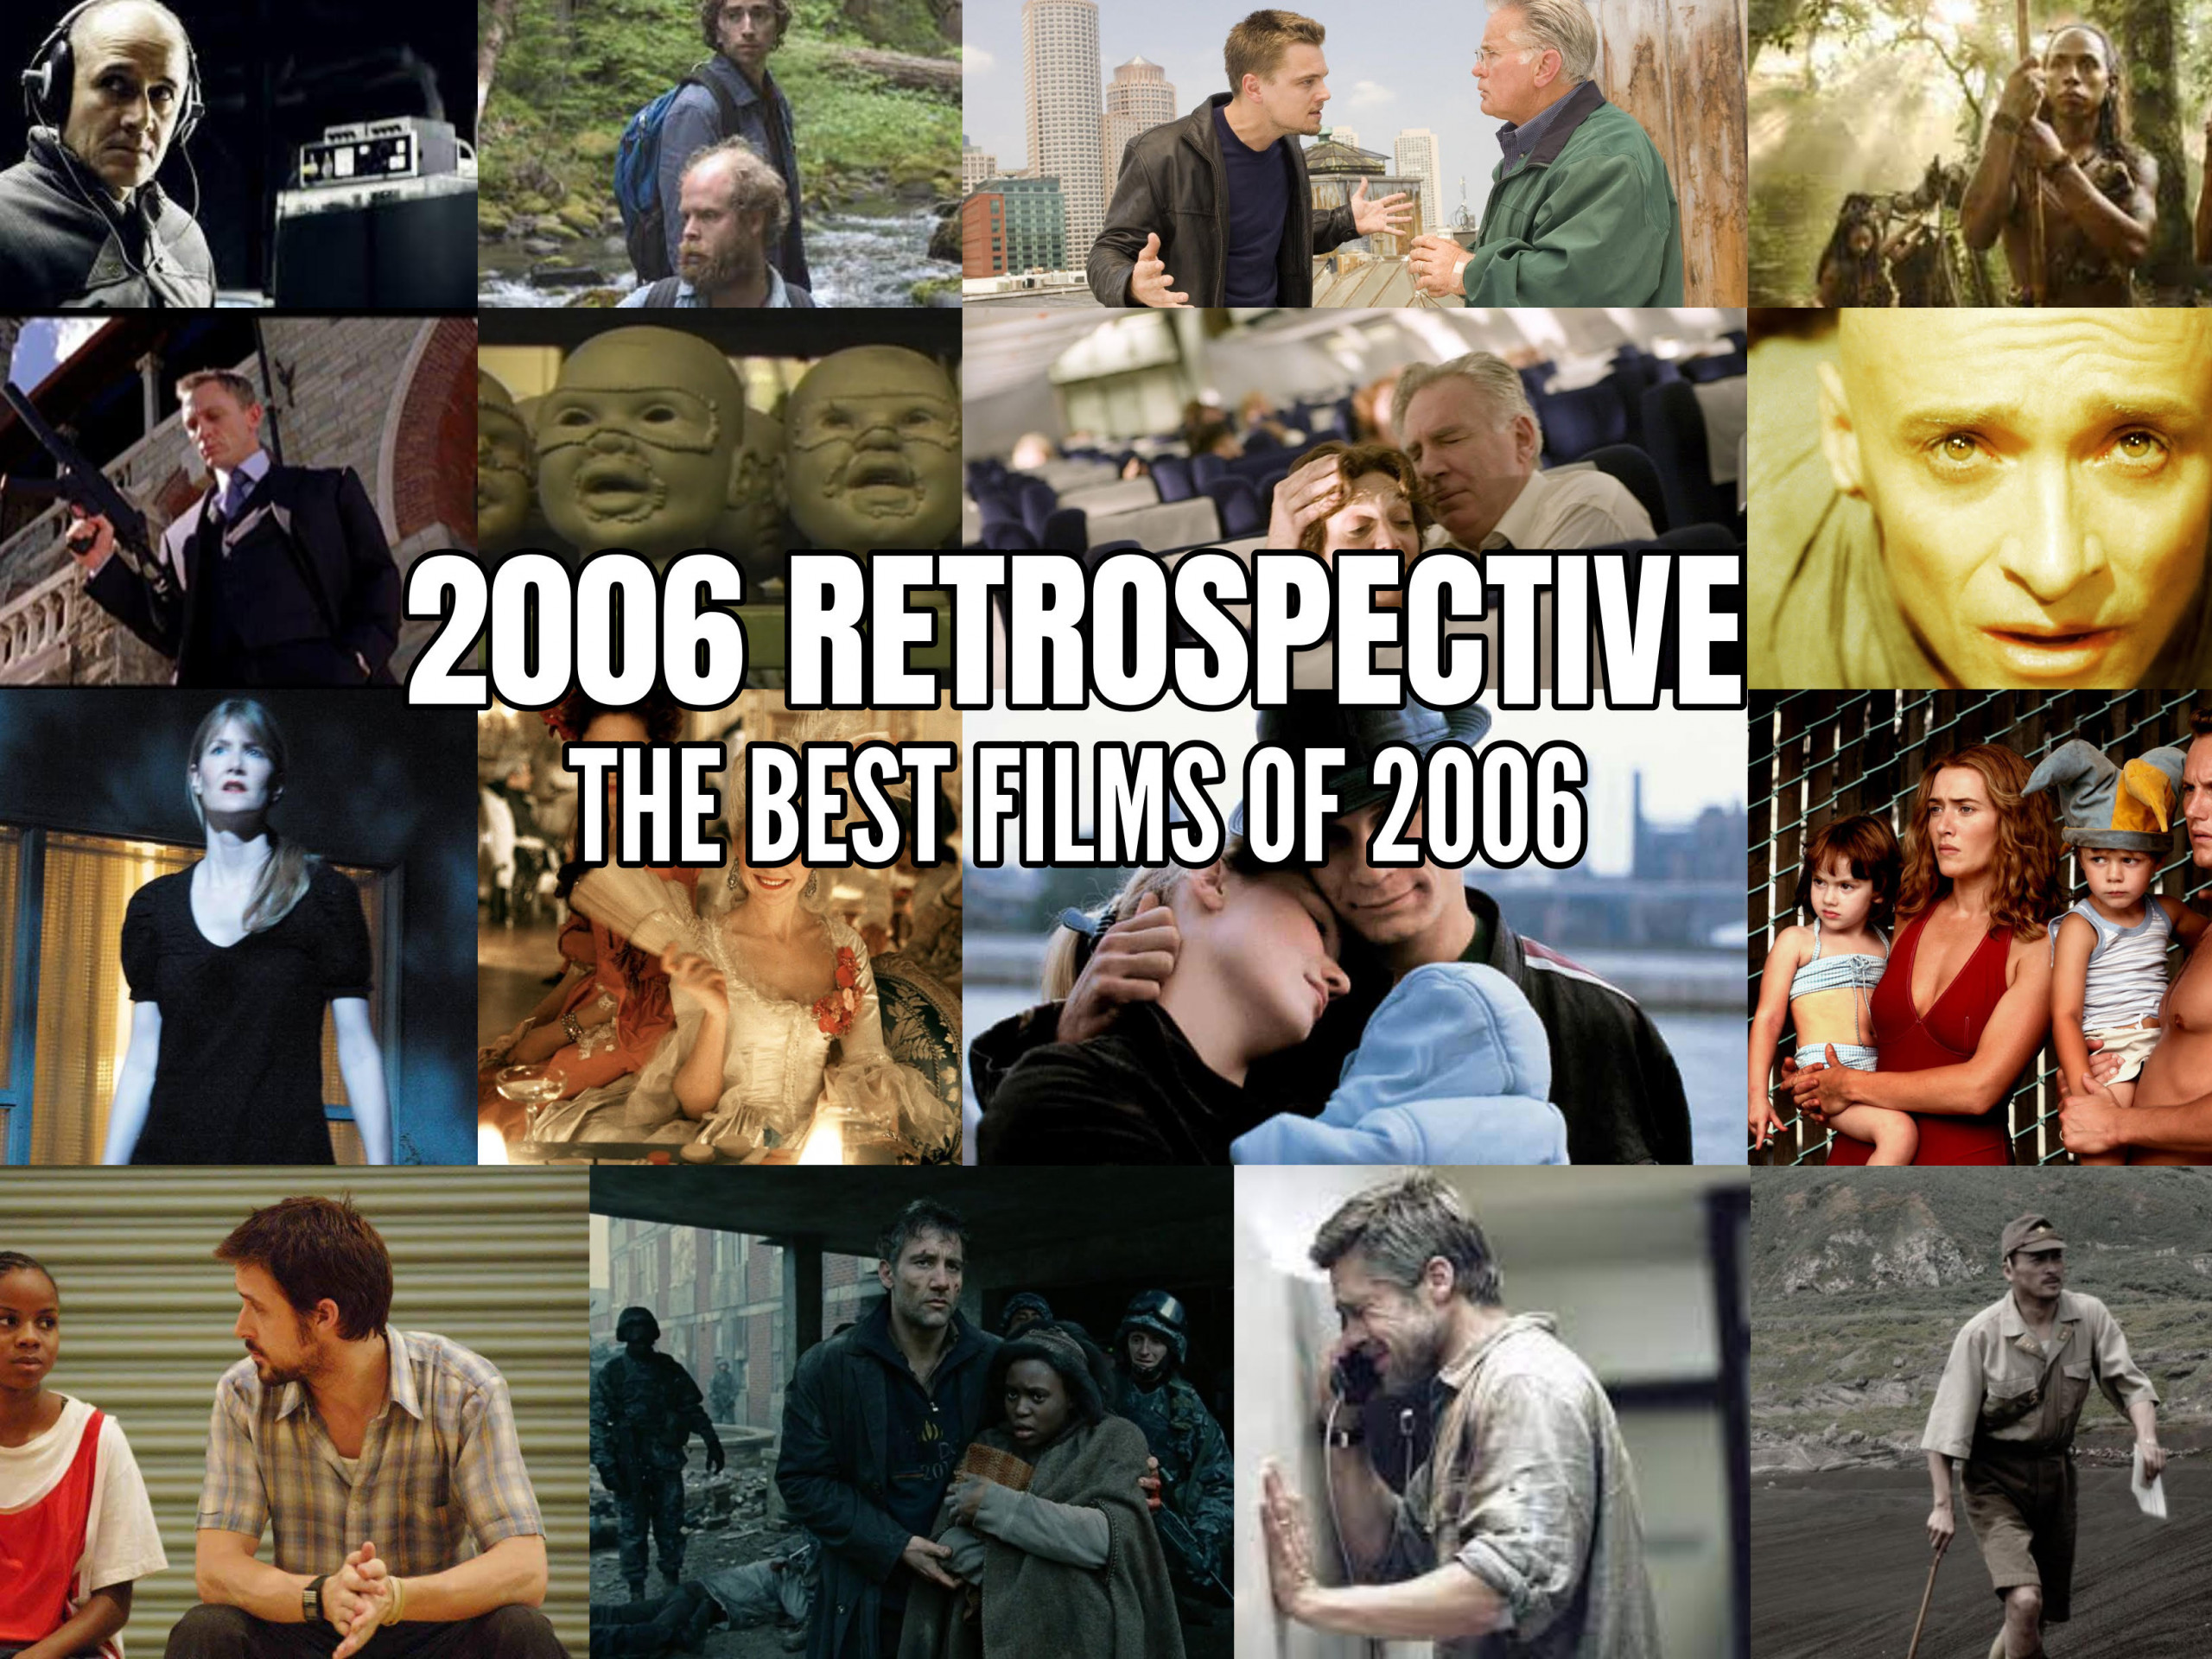 2006 Retrospective: The Best Films of 2006–15 Year Anniversary